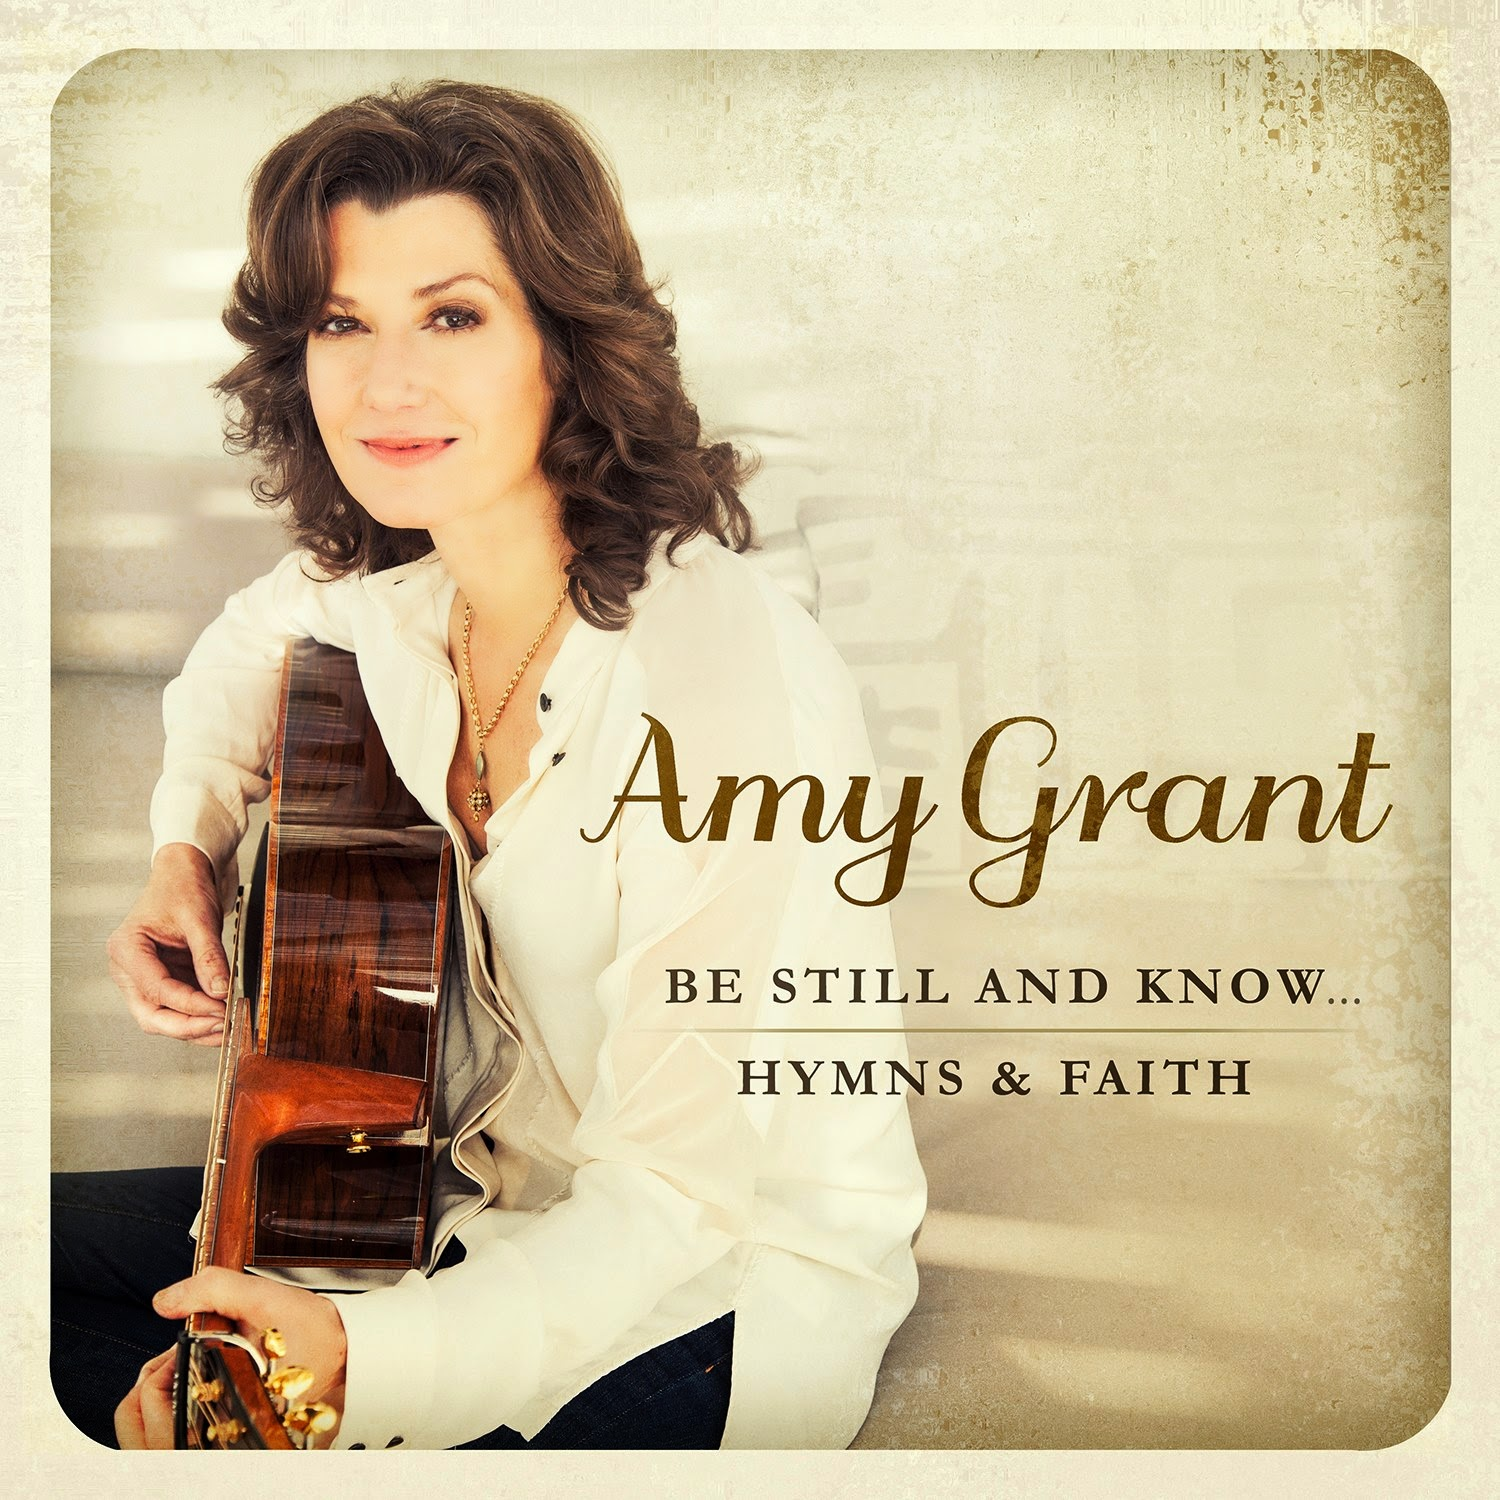 Amy Grant - Be Still and Know... Hymns & Faith 2015 English Christian Album Download